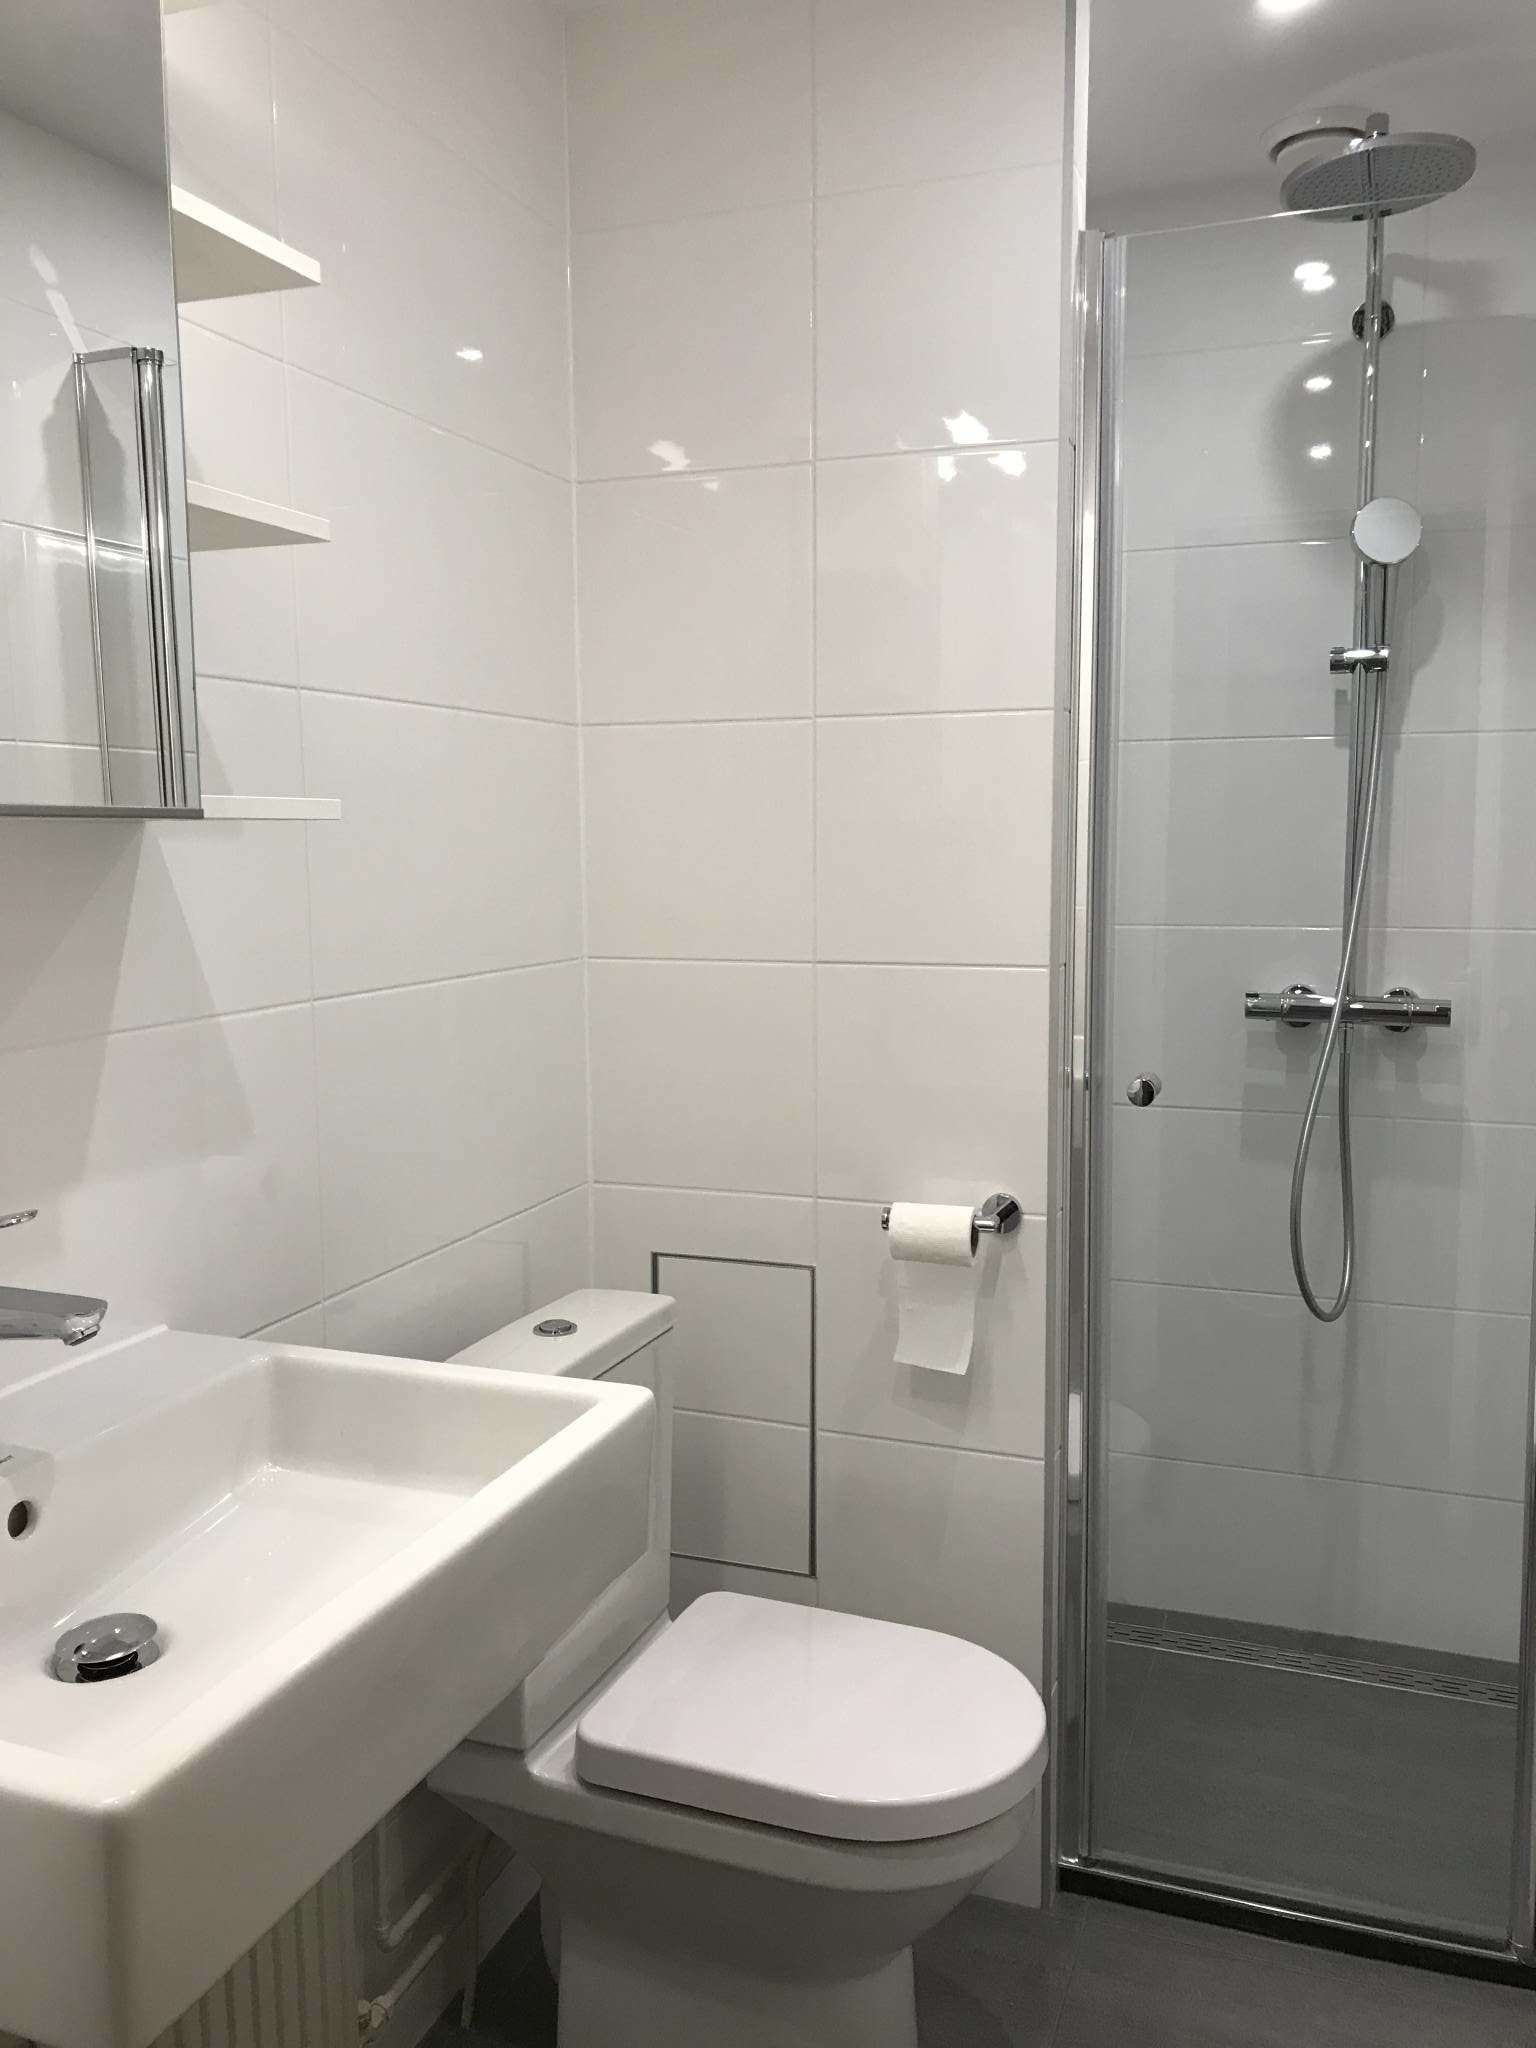 Badezimmer Mit Regendusche Beach Apartment Callantsoog Nr 8 In Callantsoog Noord Holland